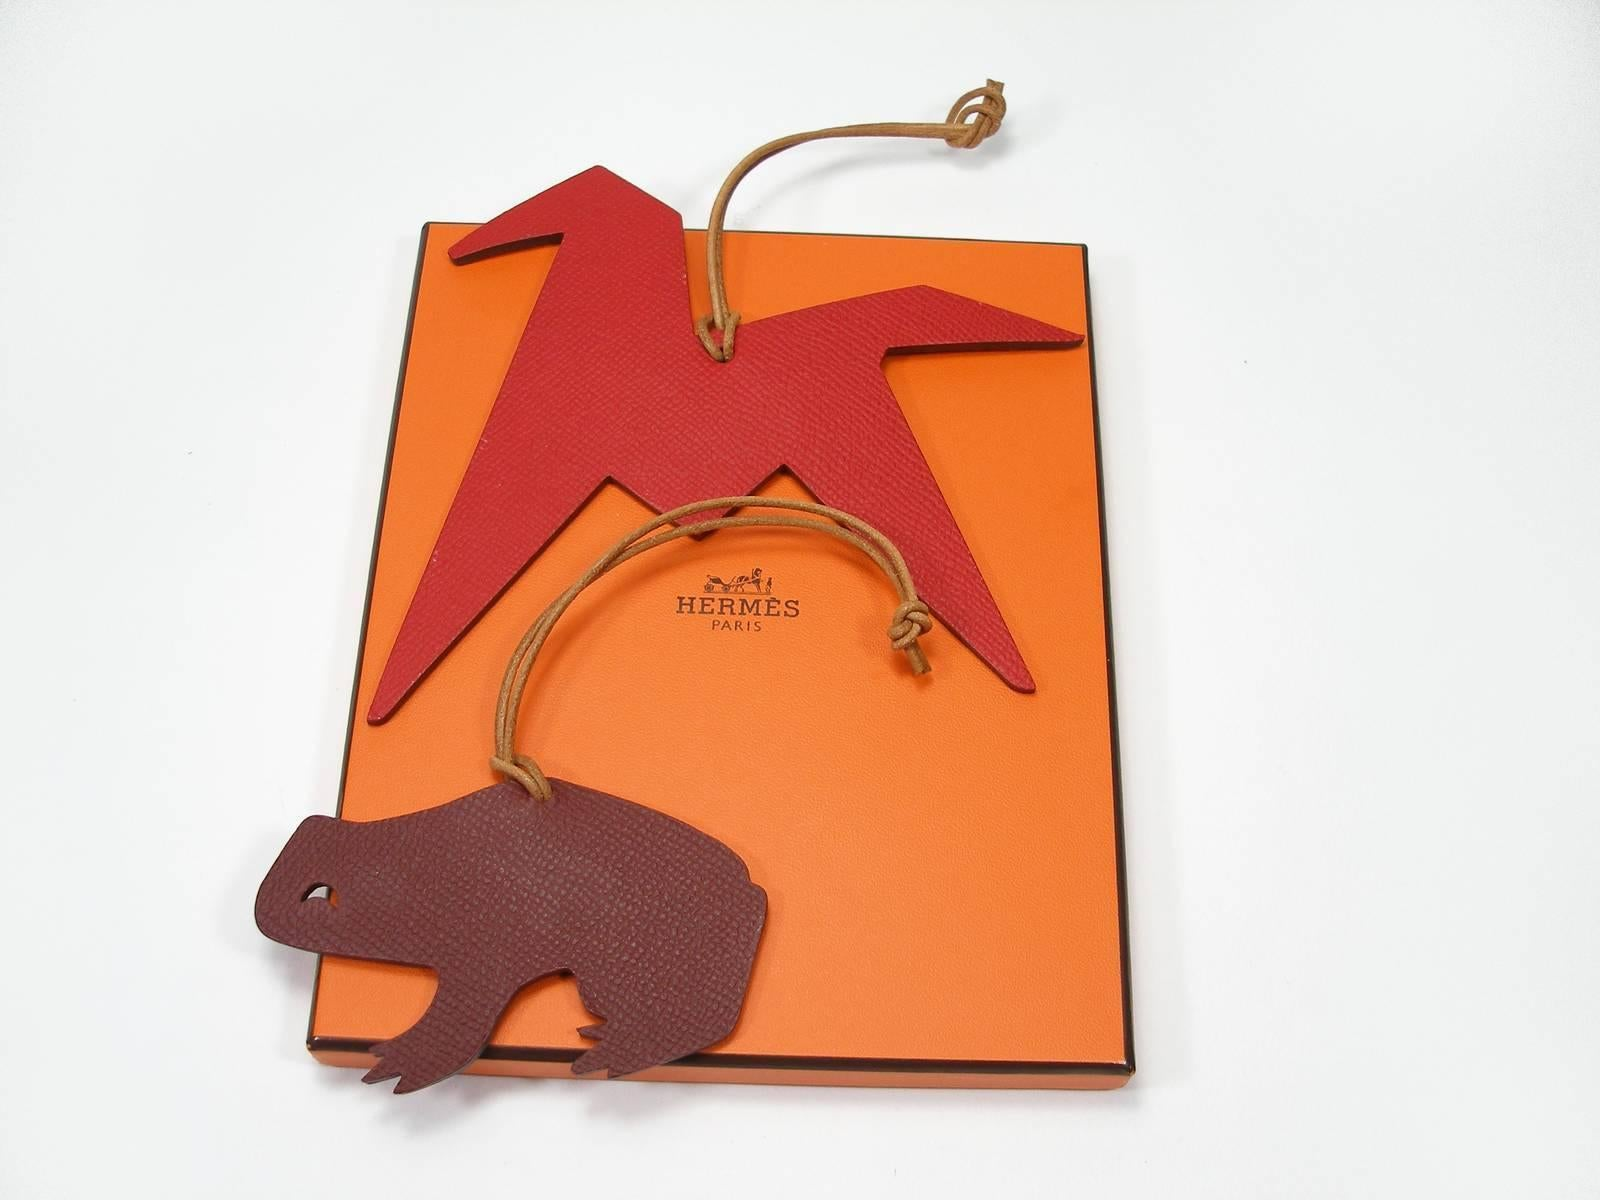 Hermès Hermes Charm Horse And Jockey In Bicoloured Green And Brown Leather VfpVyoZ